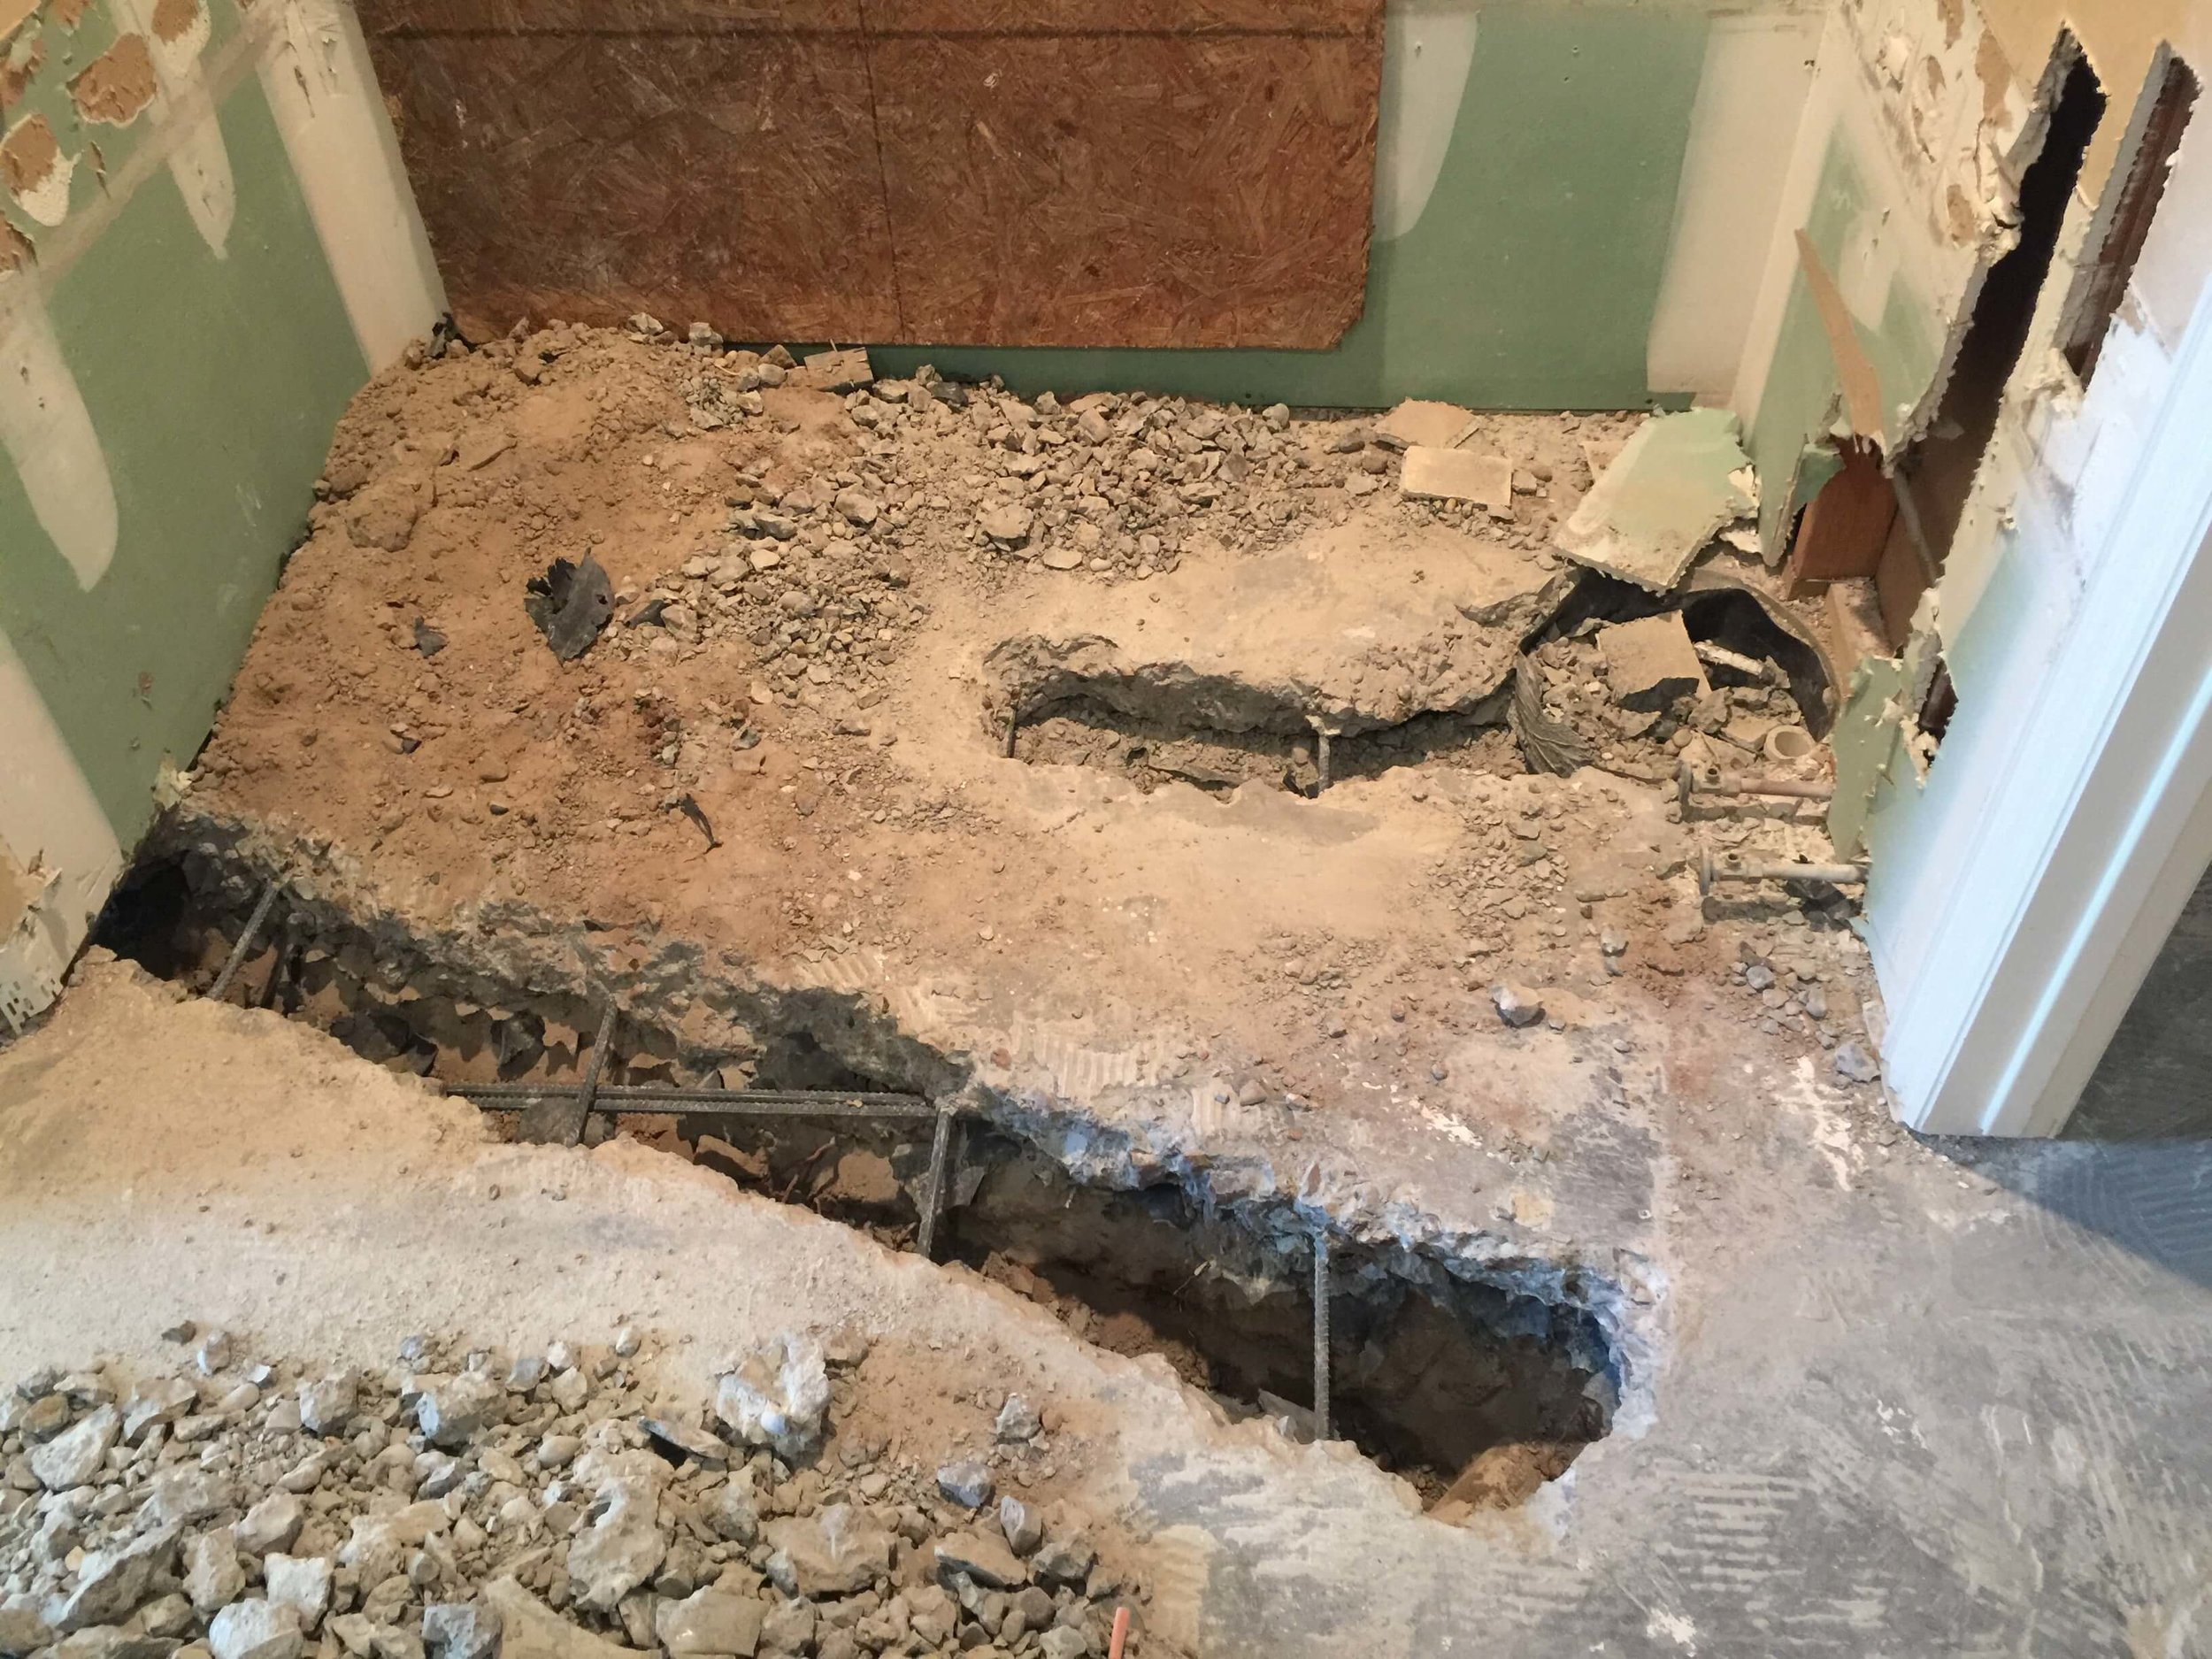 Bathroom remodel in progress - from built-in to free-standing tub